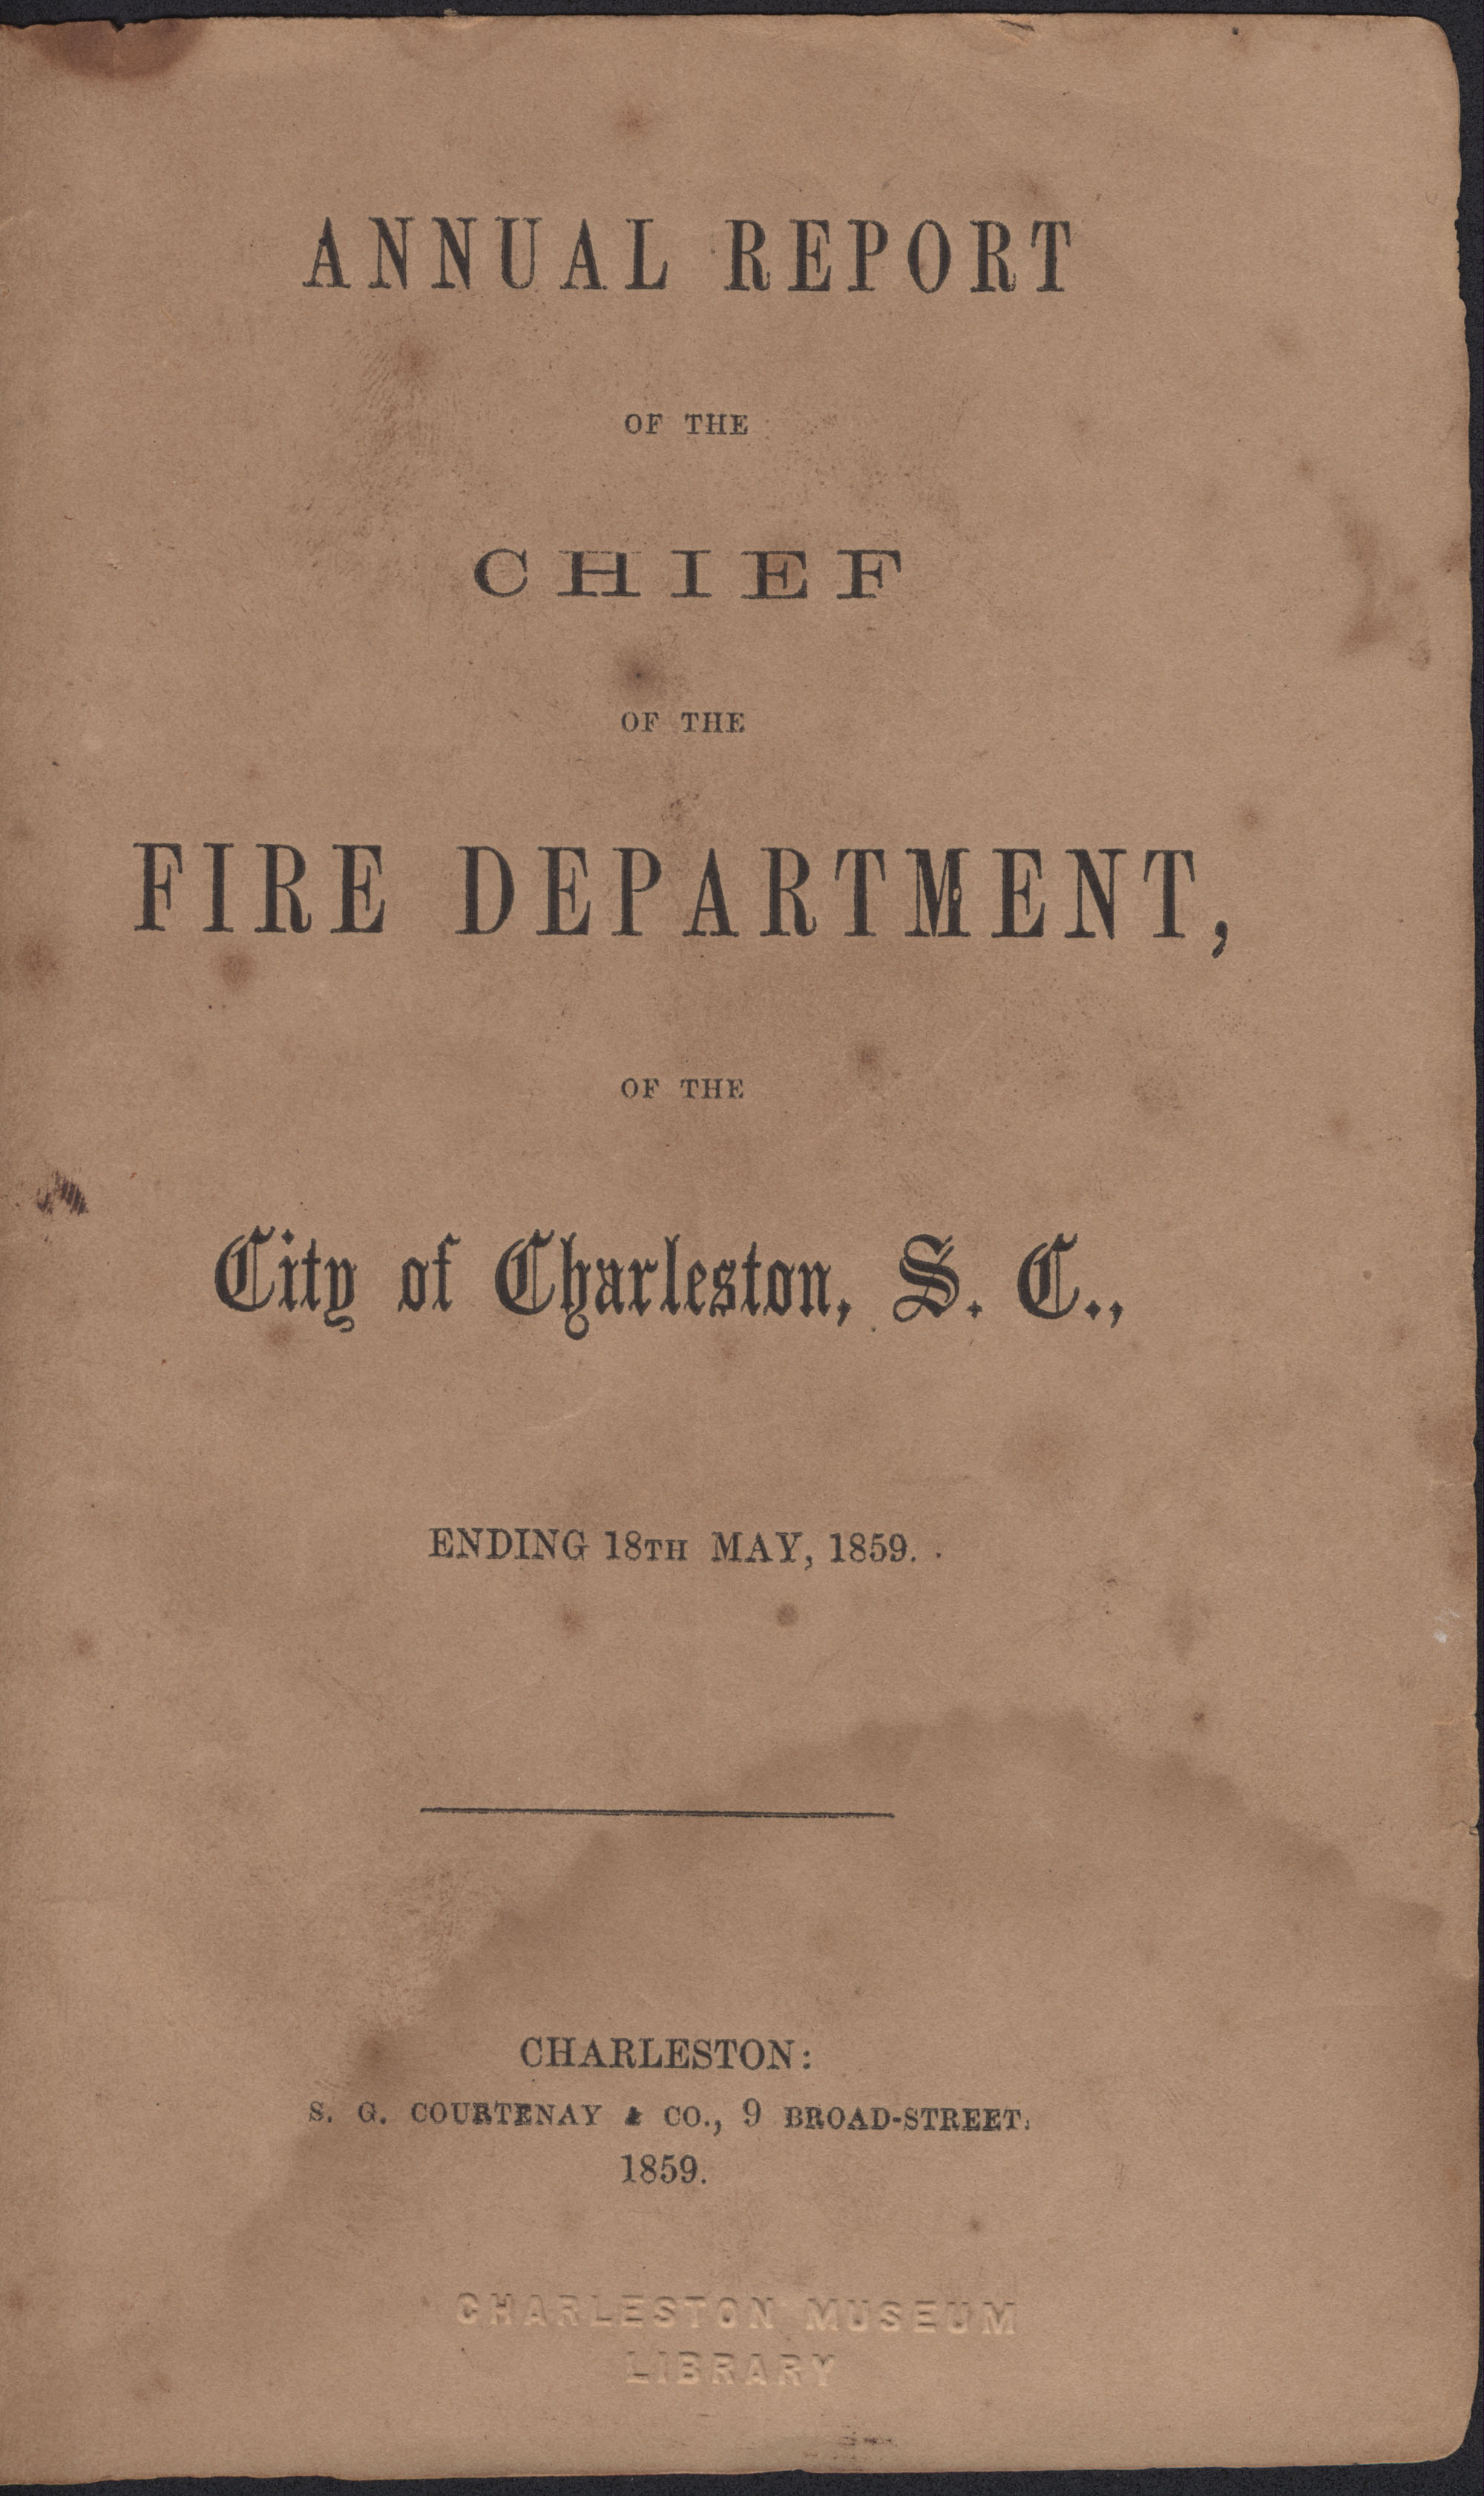 Annual Report of the Chief of the Fire Department of the City of Charleston, page 1